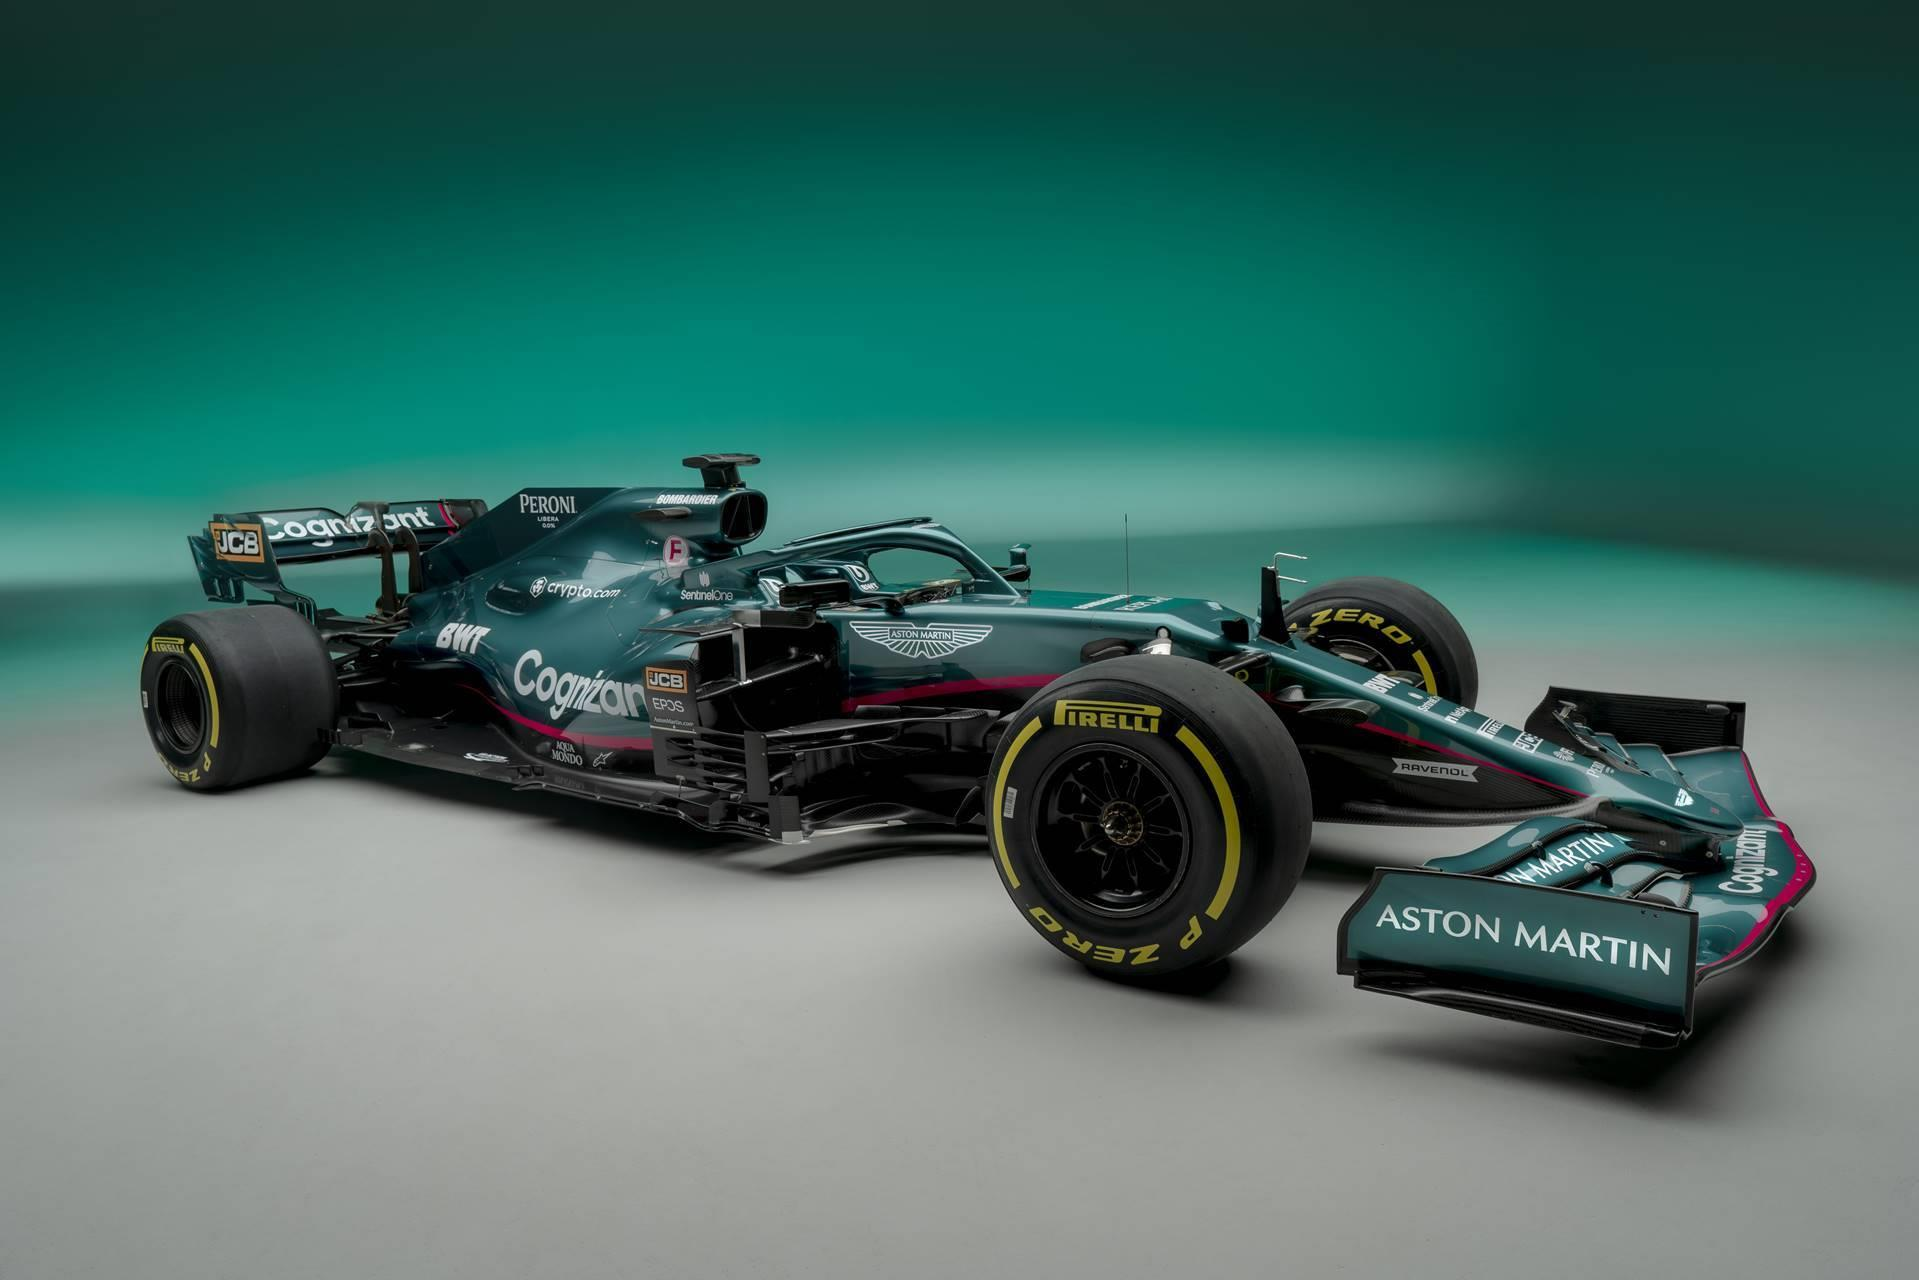 2021 Aston Martin Amr21 News And Information Research And Pricing